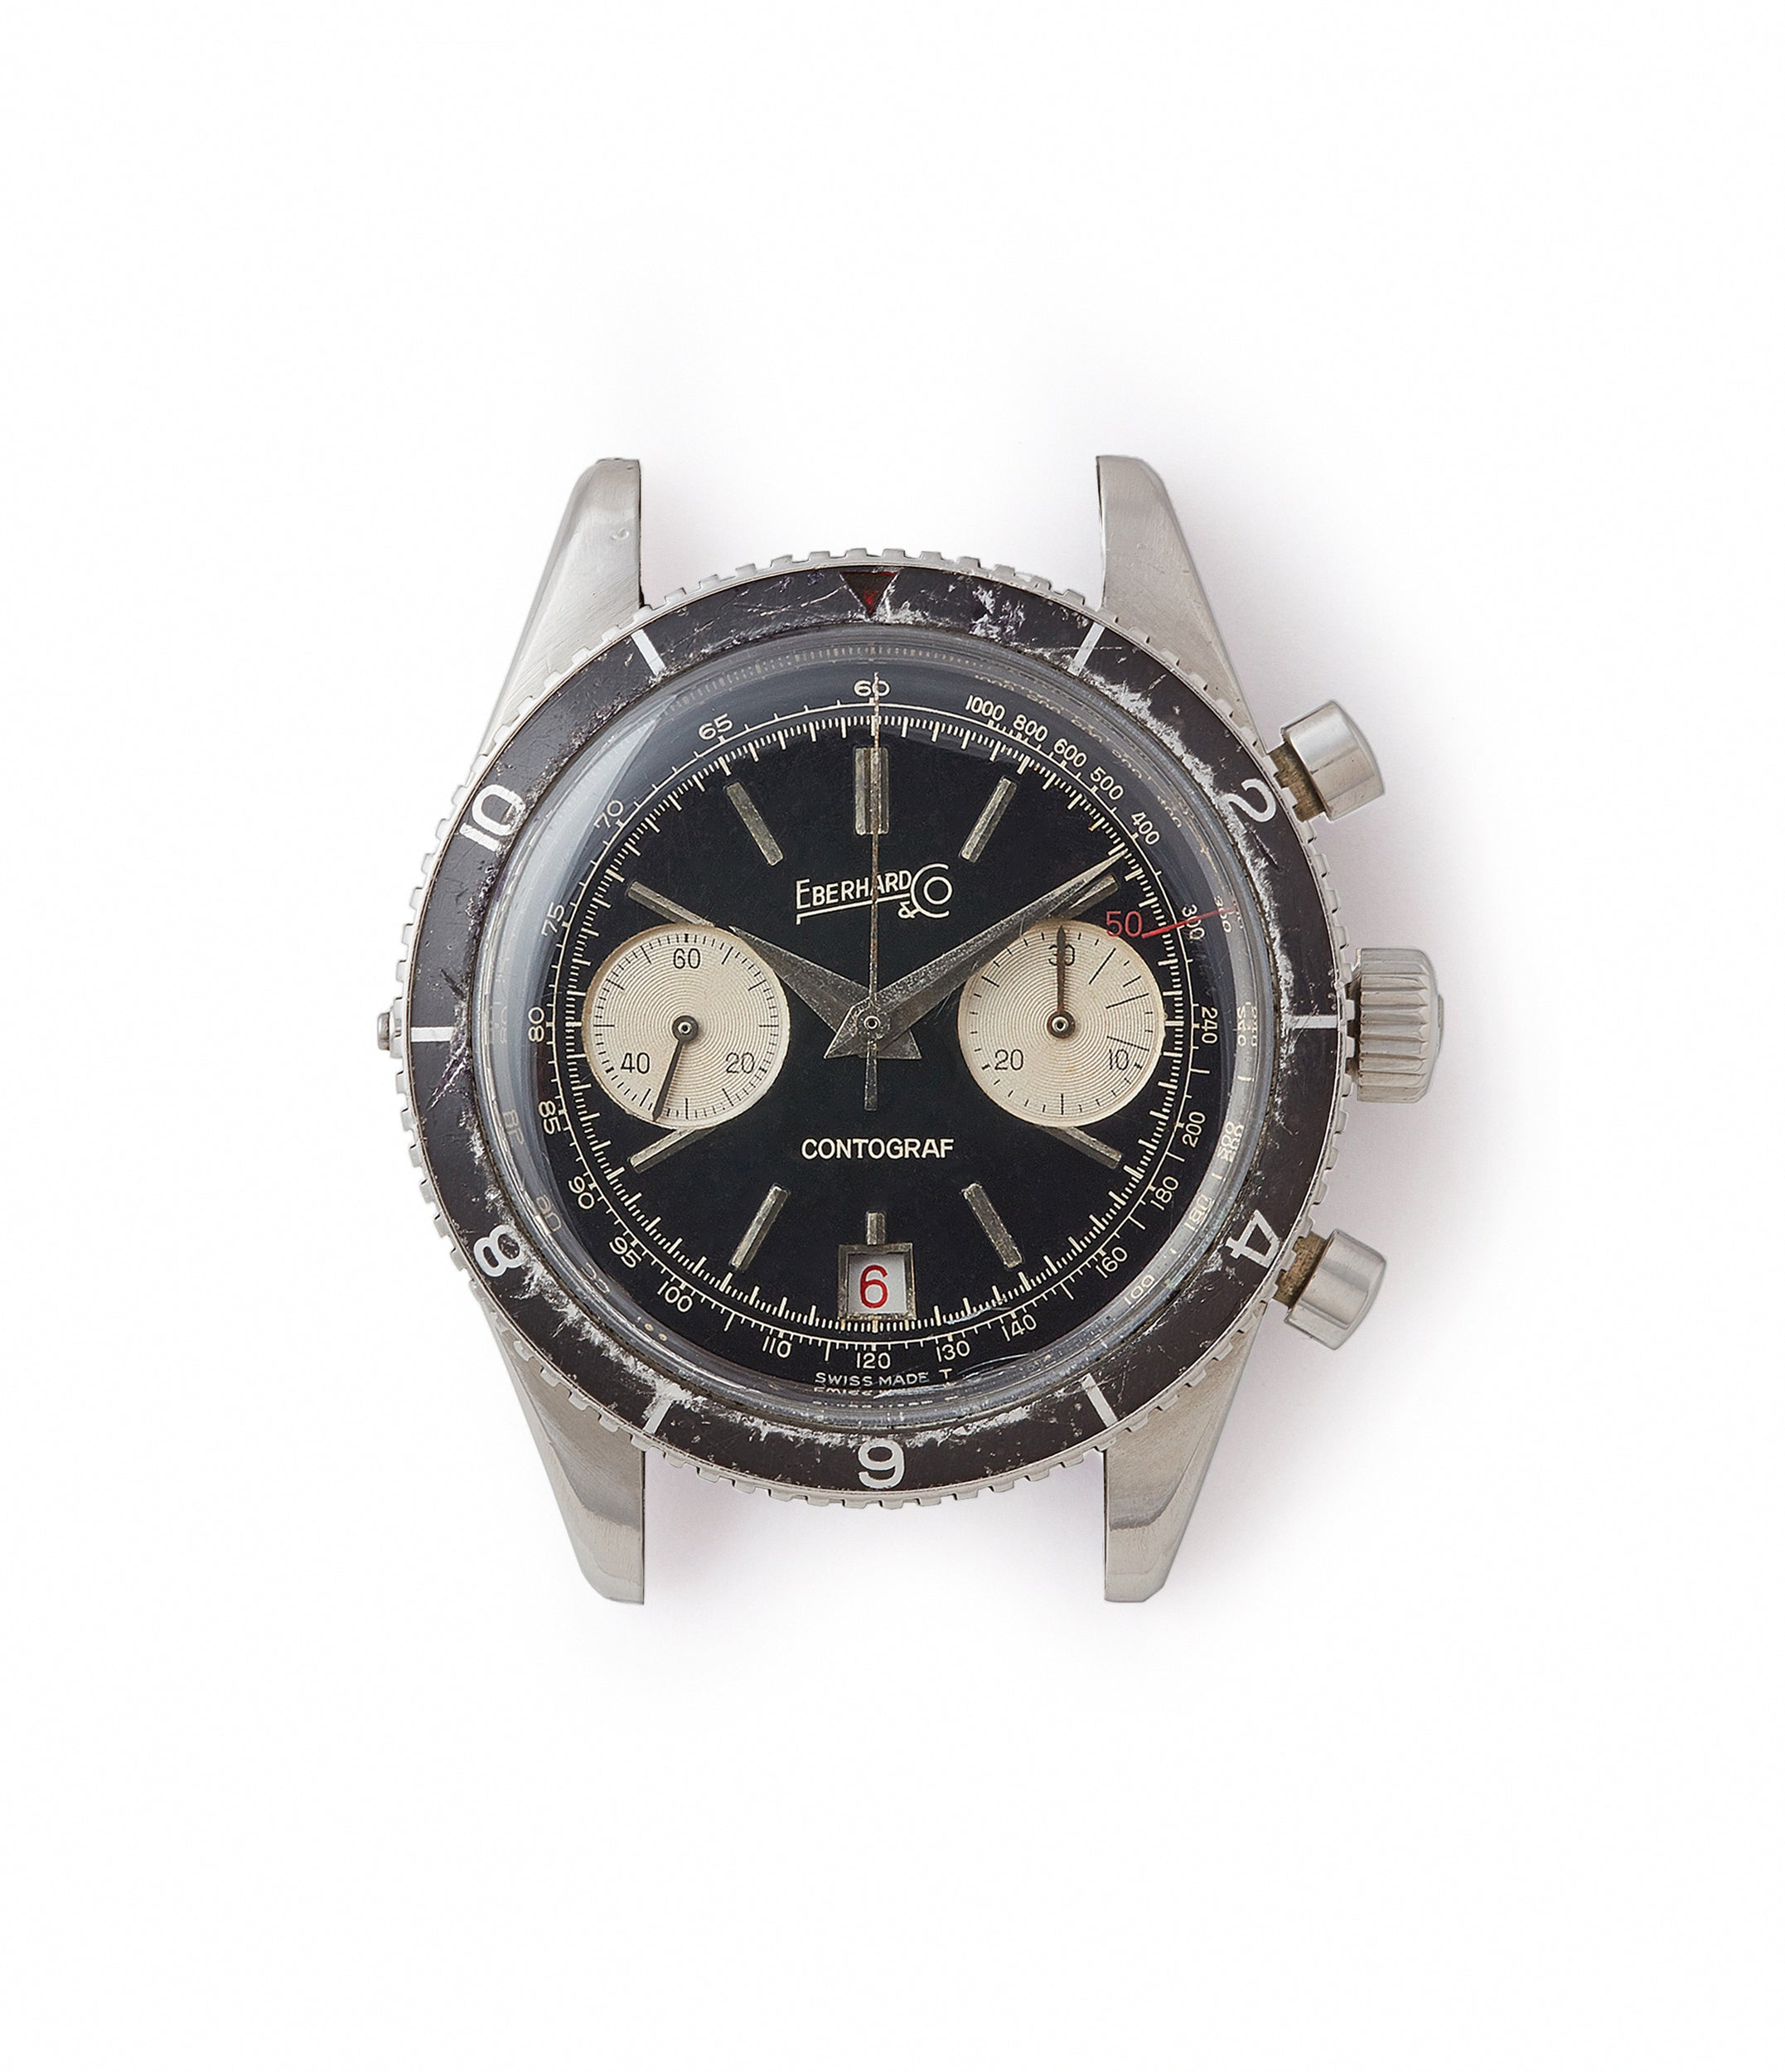 vintage sports watch Eberhard Contograf chronograph steel sports watch for sale online at A Collected Man London UK specialist of rare watches